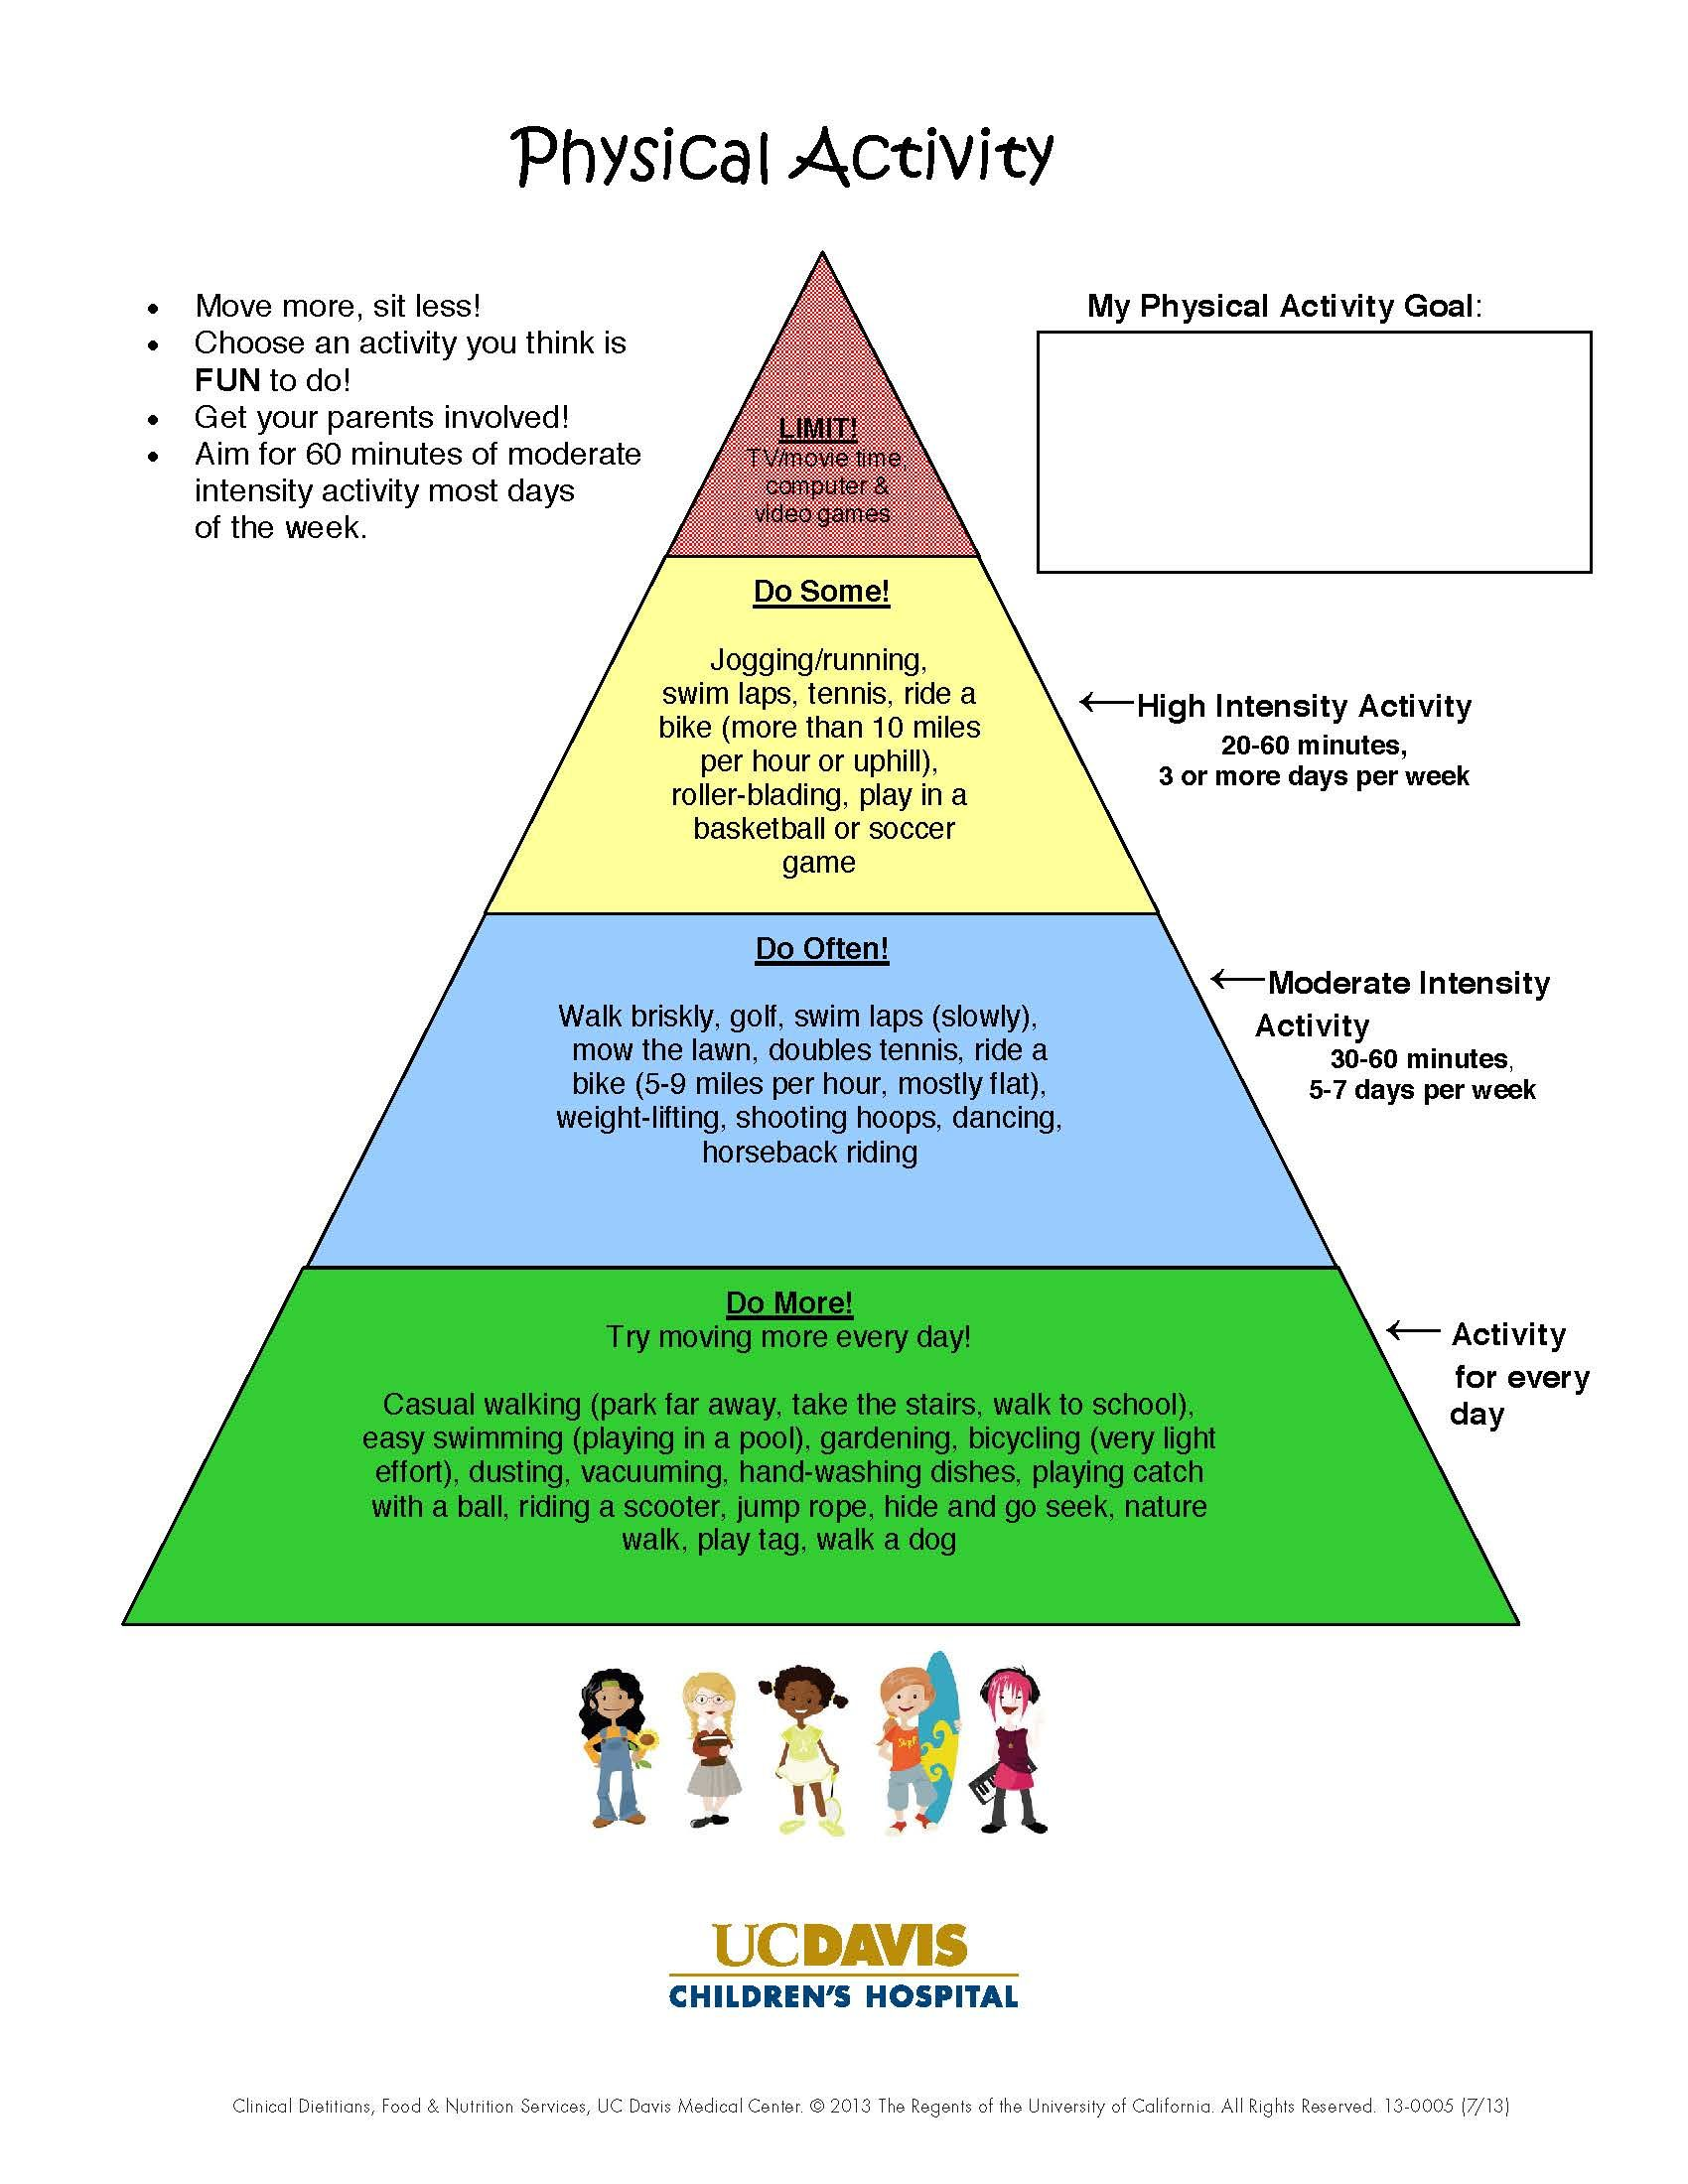 Physical Activity Pyramid From Uc Davis Children S Hospital Physical Activities Child Life Specialist Childrens Hospital